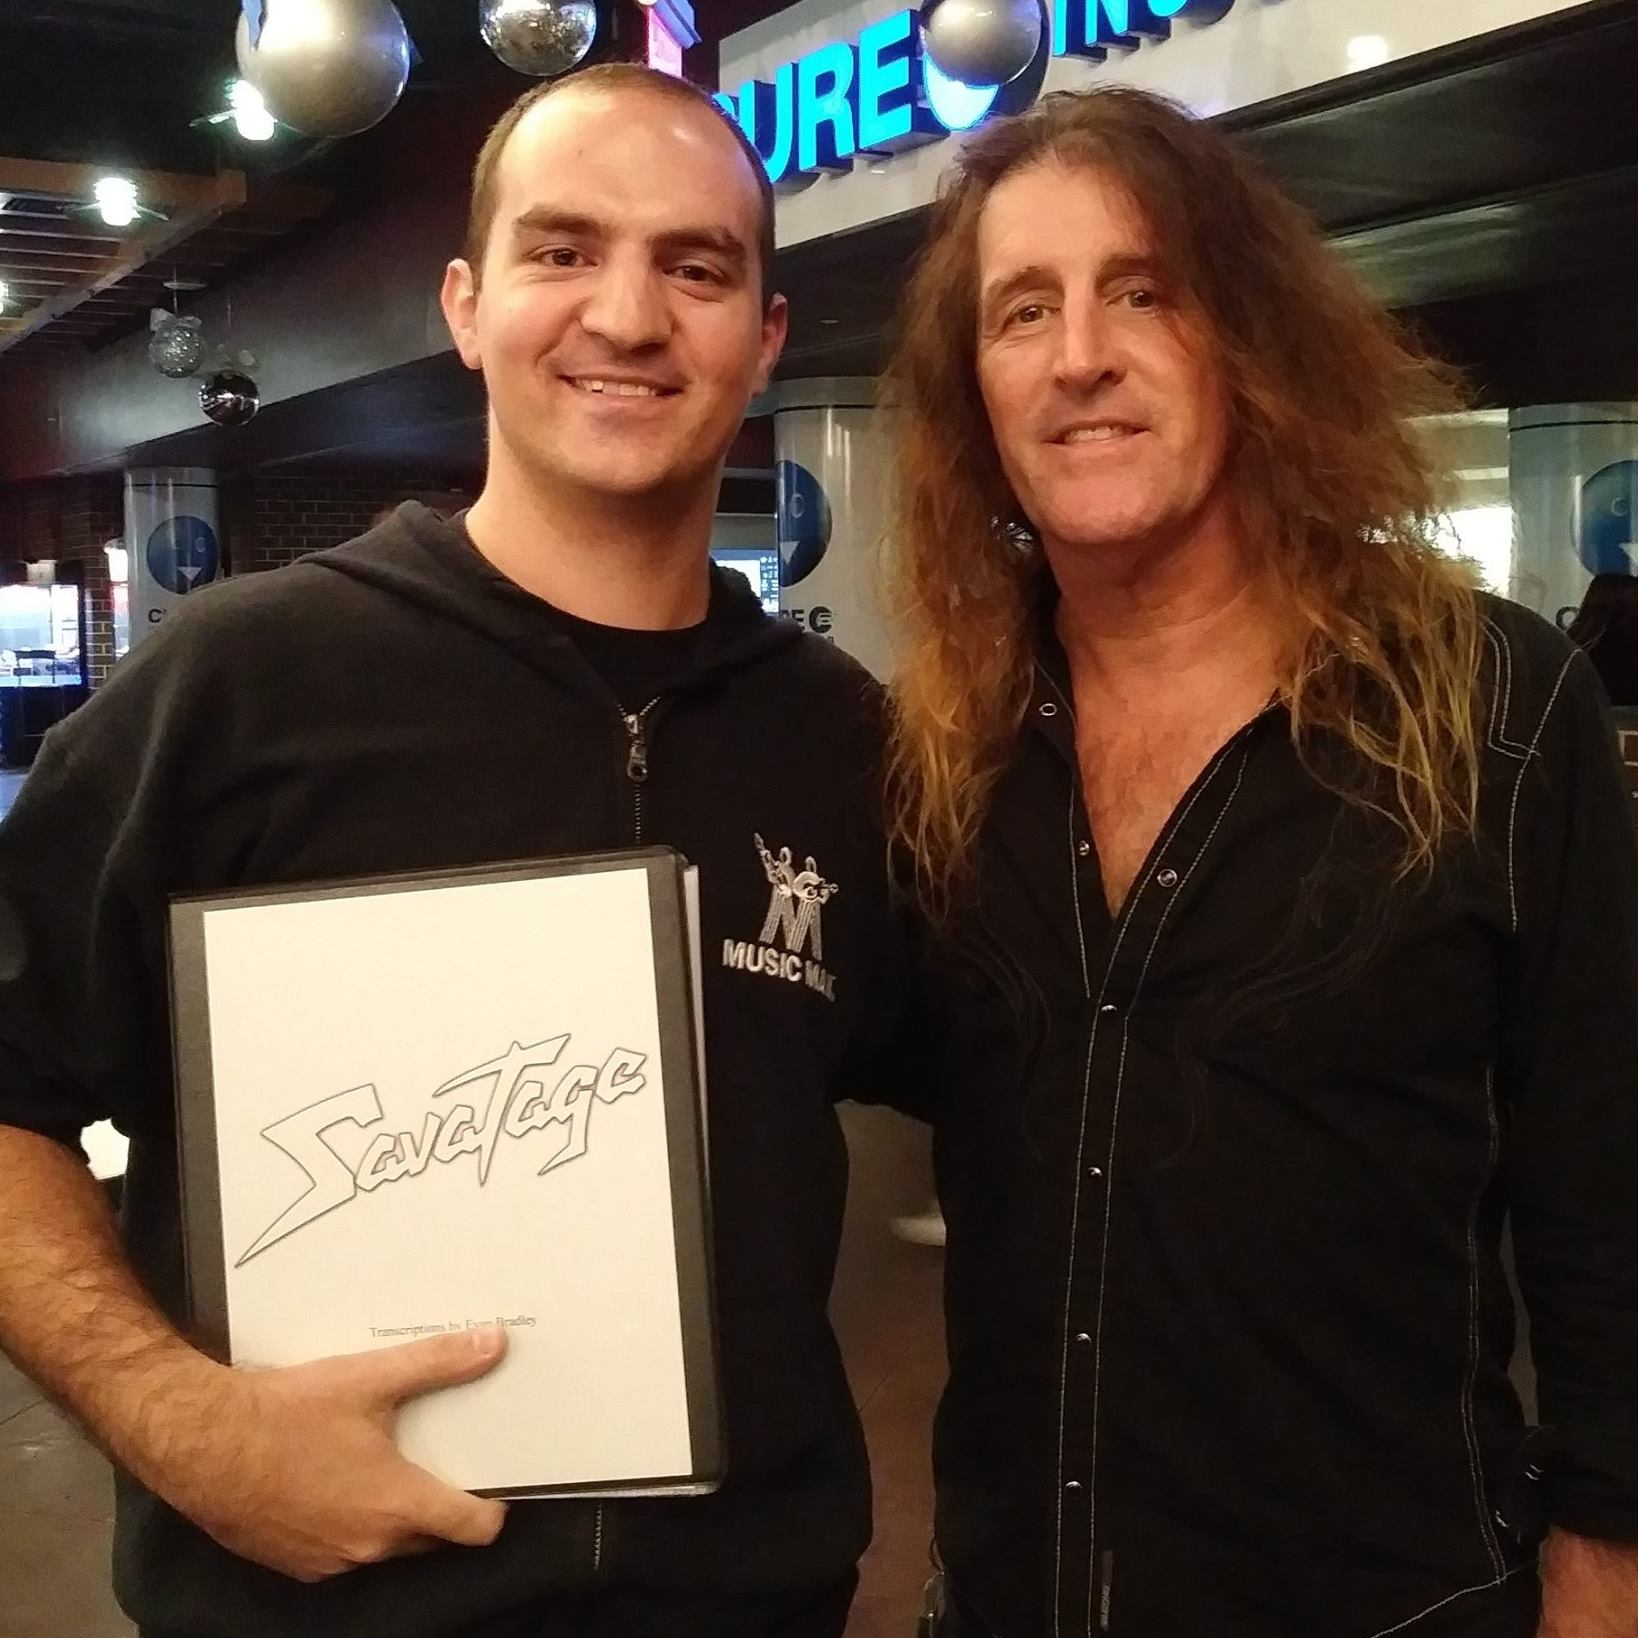 Evan Bradley and Jeff Plate of TSO/Savatage